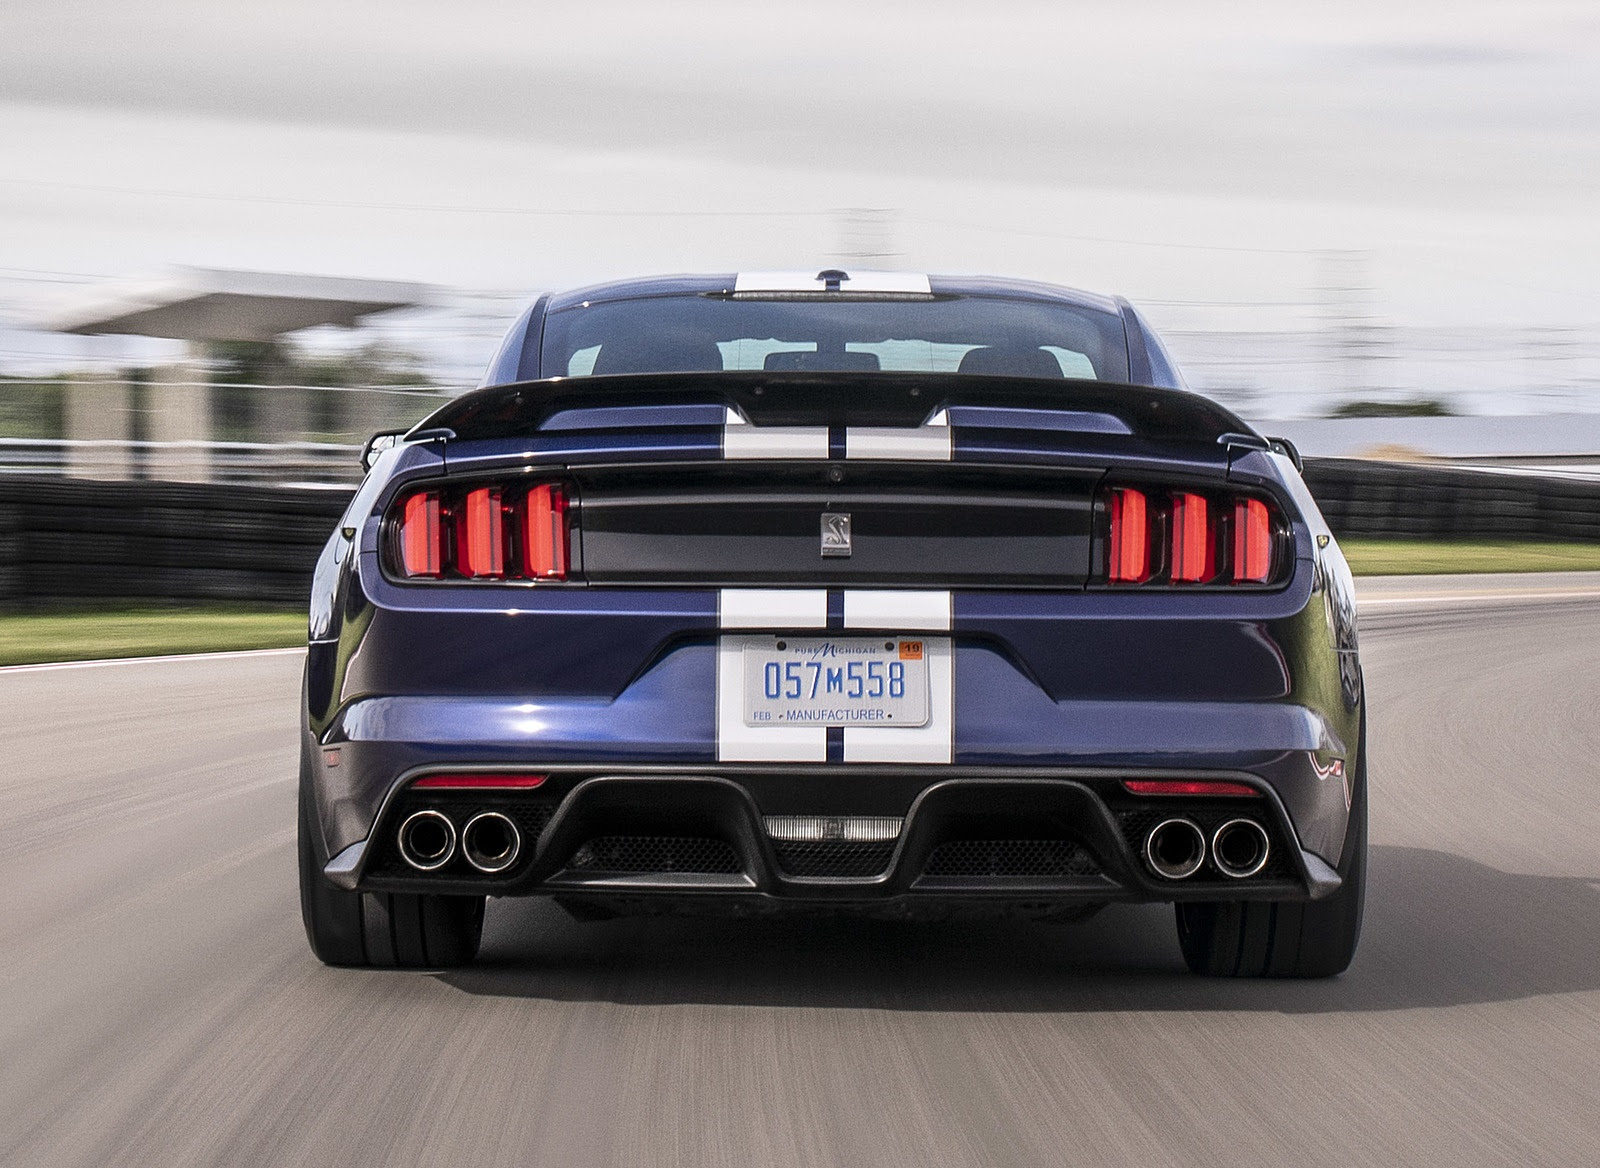 Mustang Shelby Gt350 Wallpapers